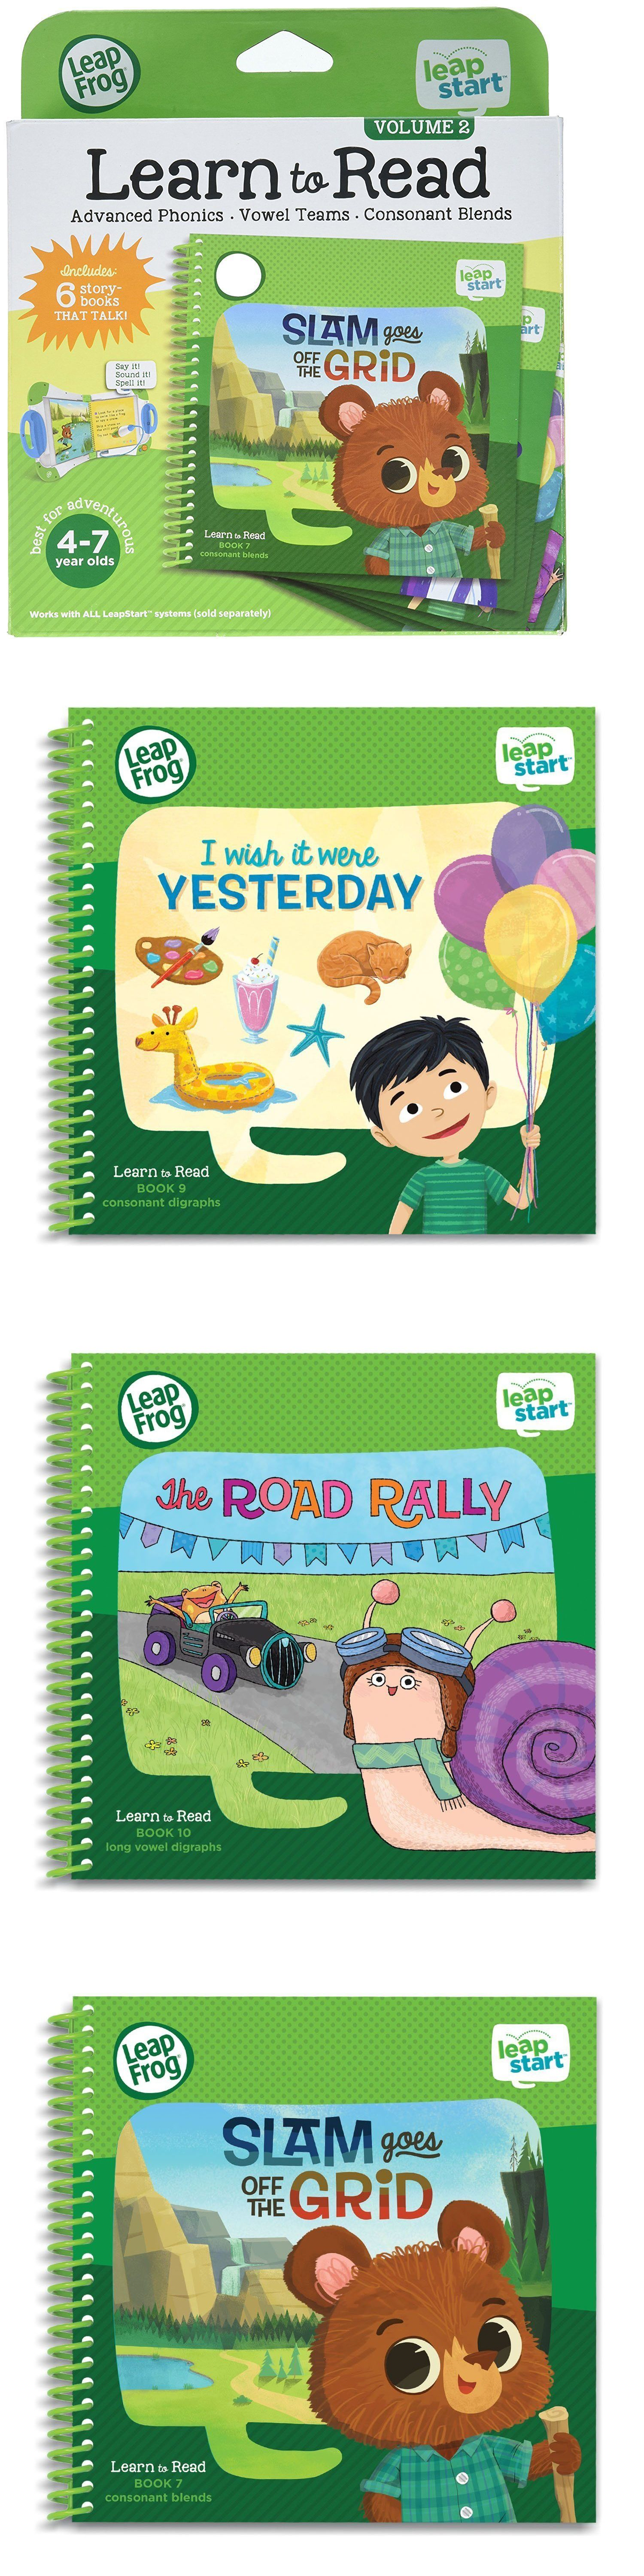 Learning Systems Leapfrog Leapstart Learn To Read